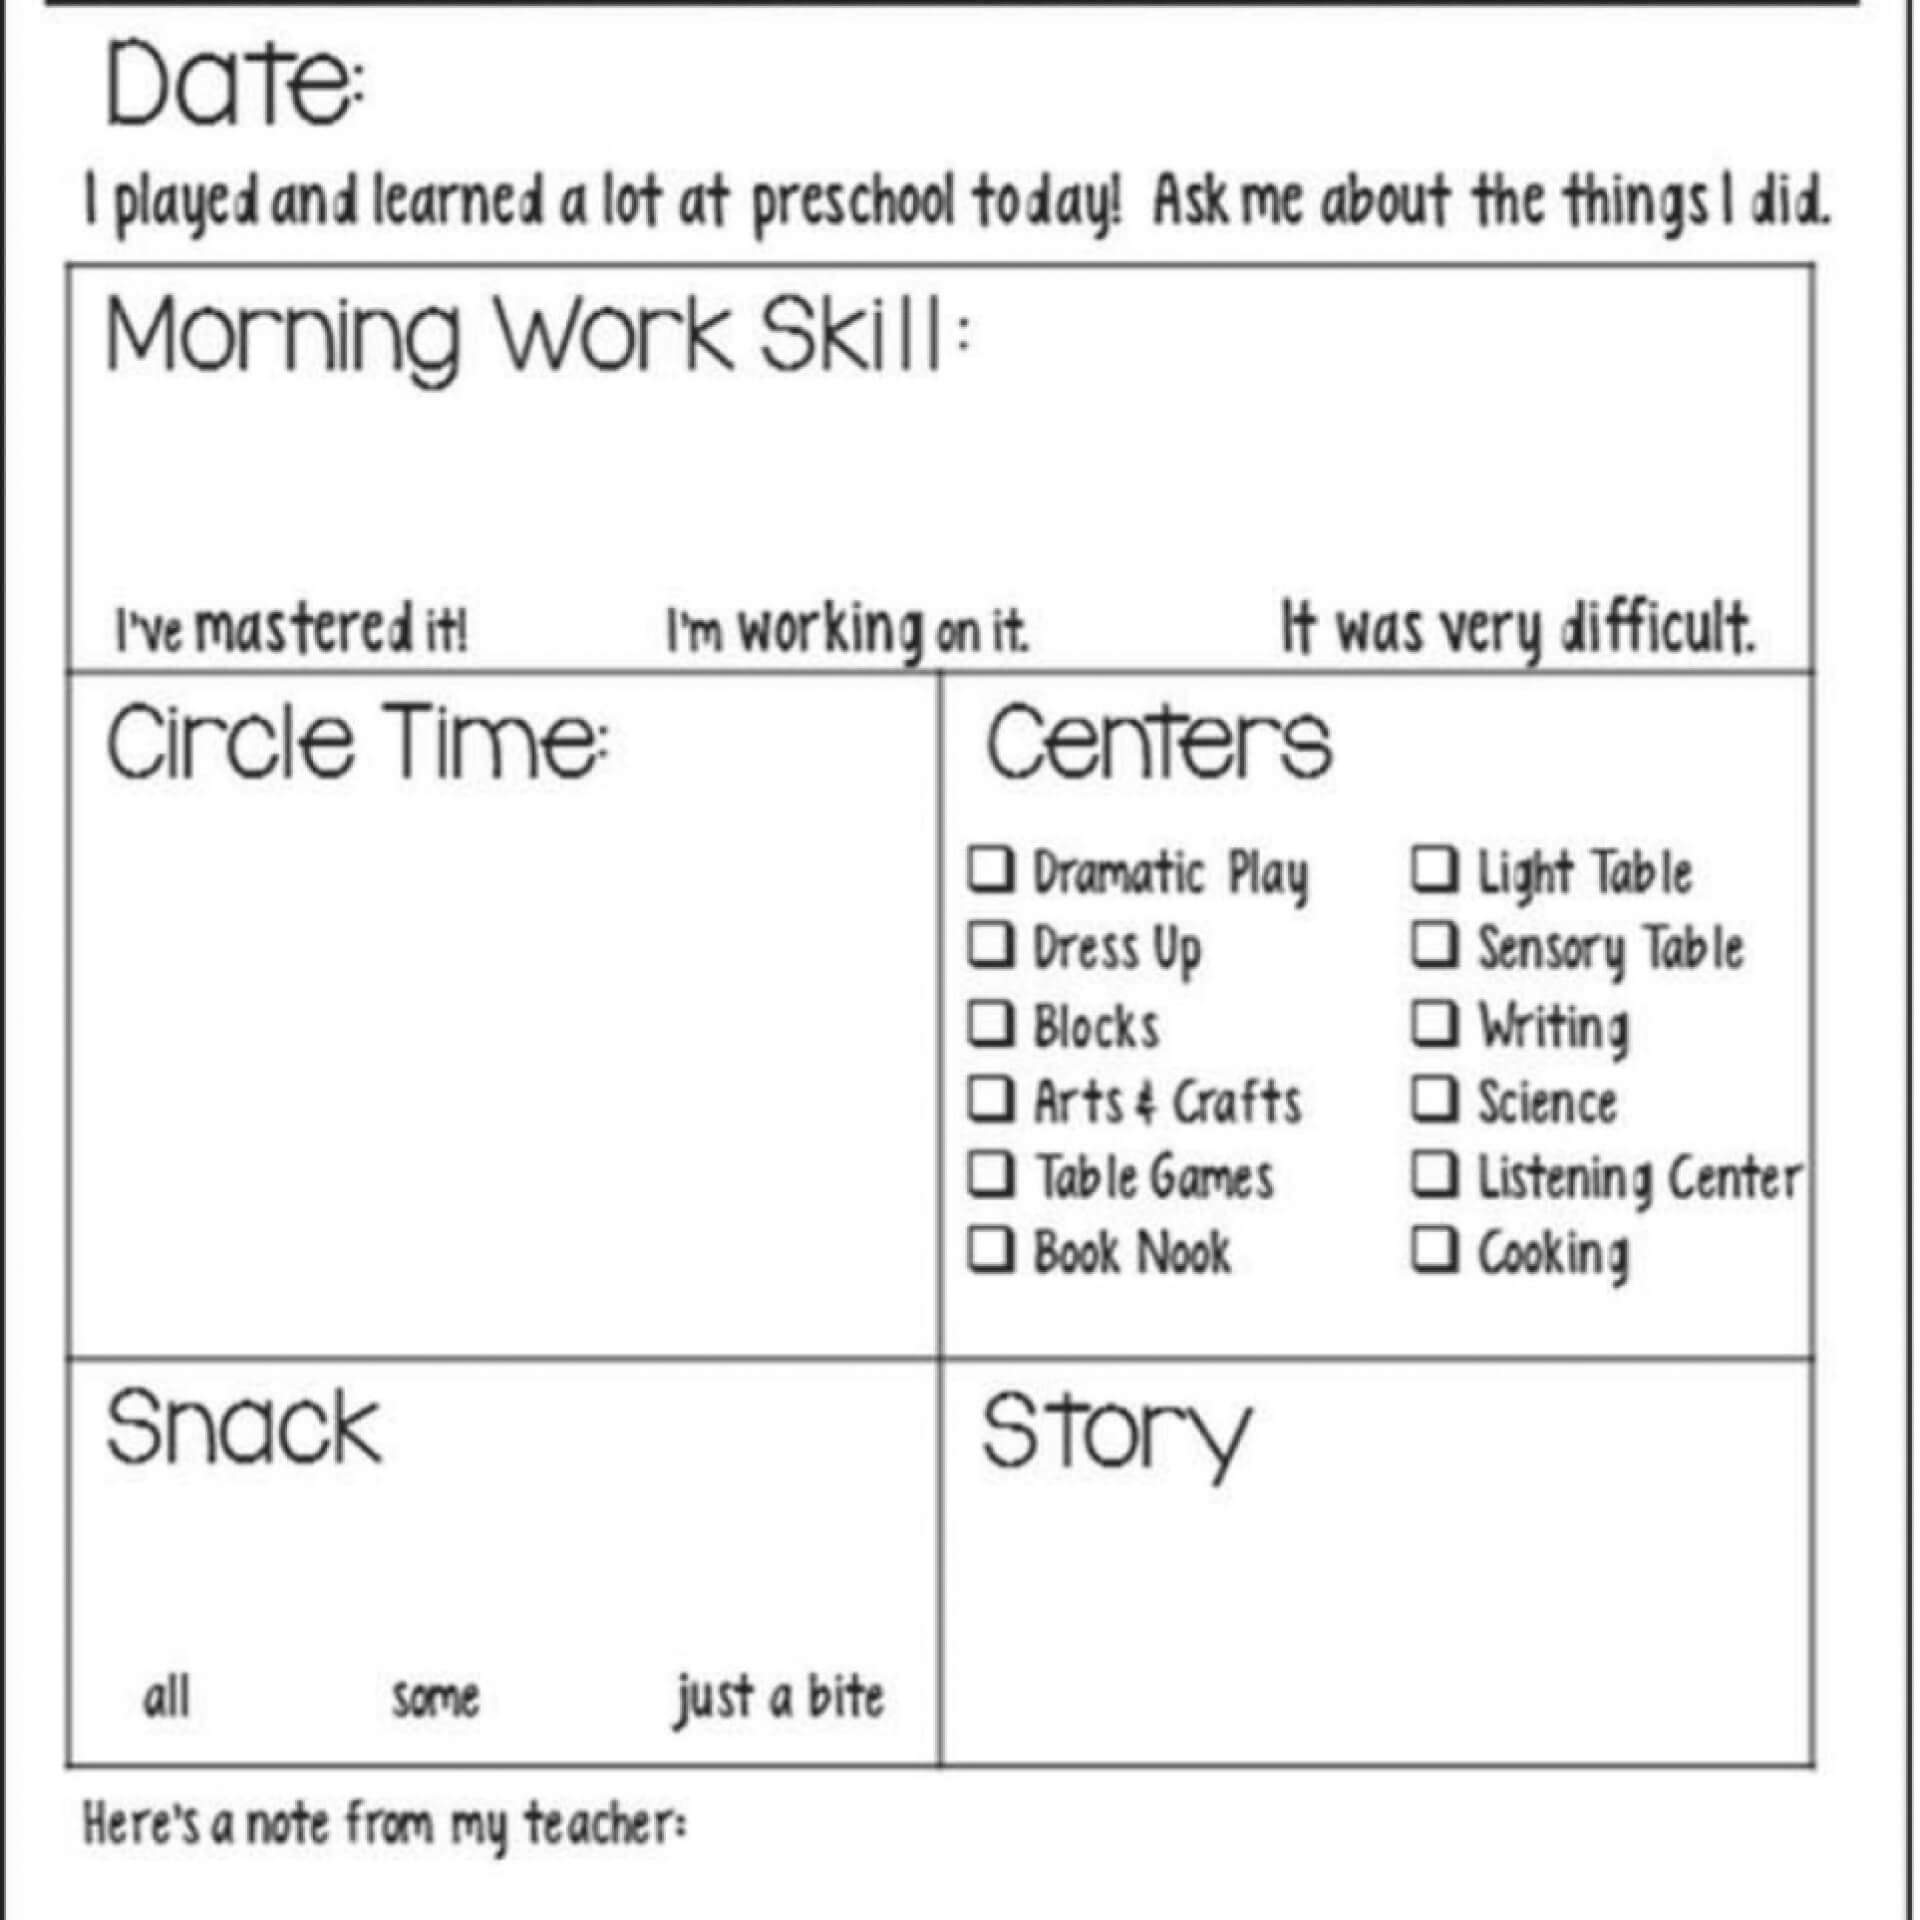 020 Preschool Daily Report Template Phenomenal Ideas Sheets Pertaining To Daycare Infant Daily Report Template